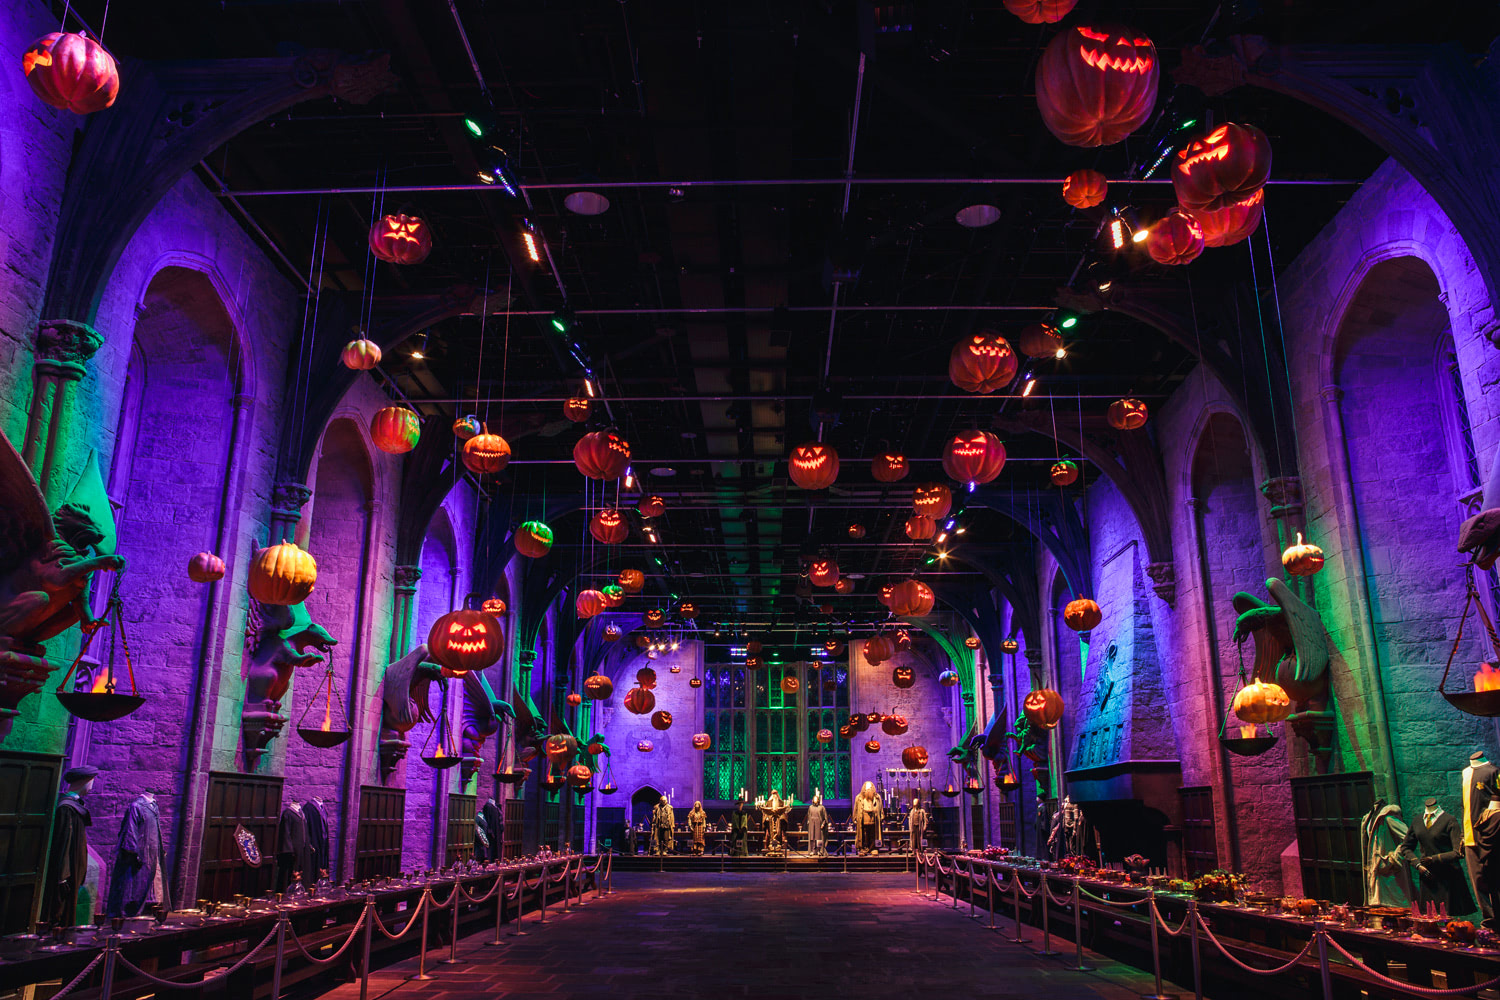 Halloween at the 'Harry Potter' studio tour